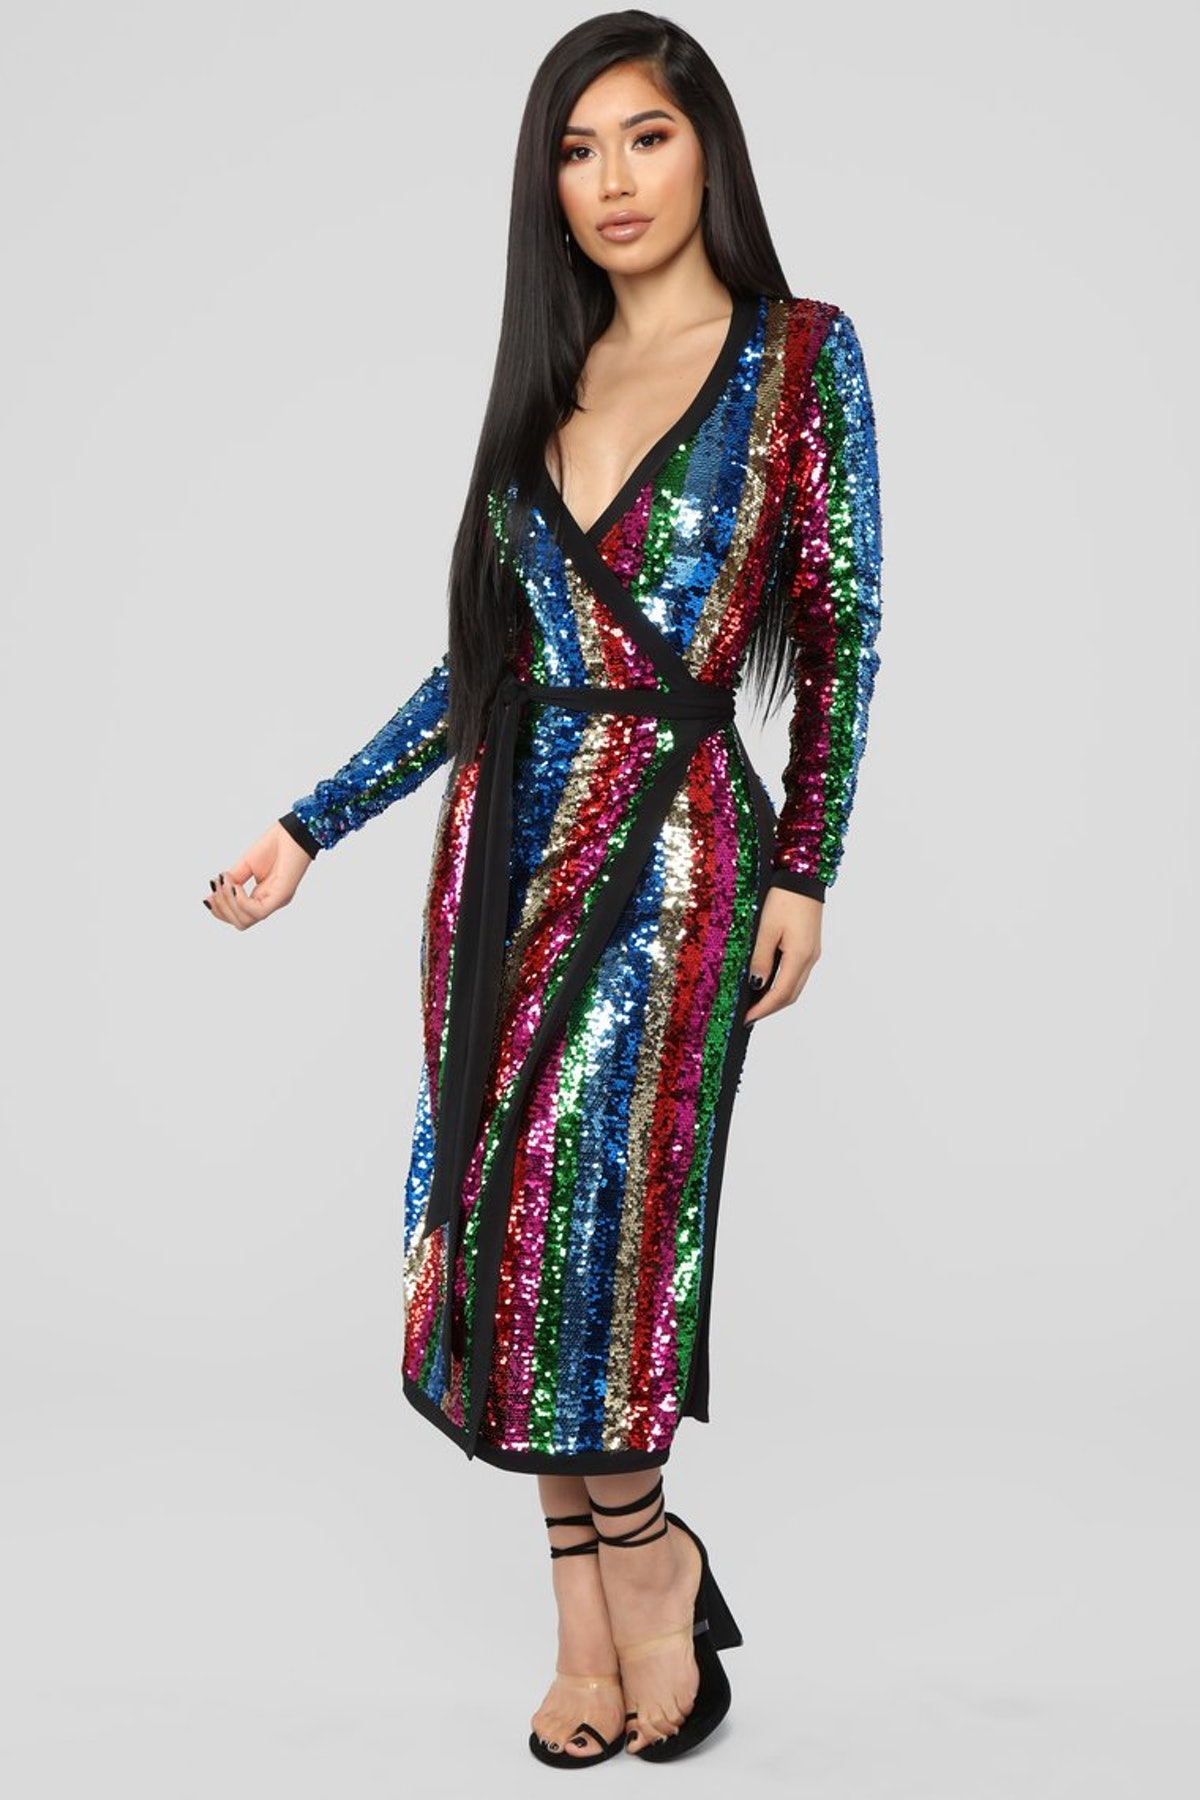 The Show Must Go On Sequin Dress - MultiColor